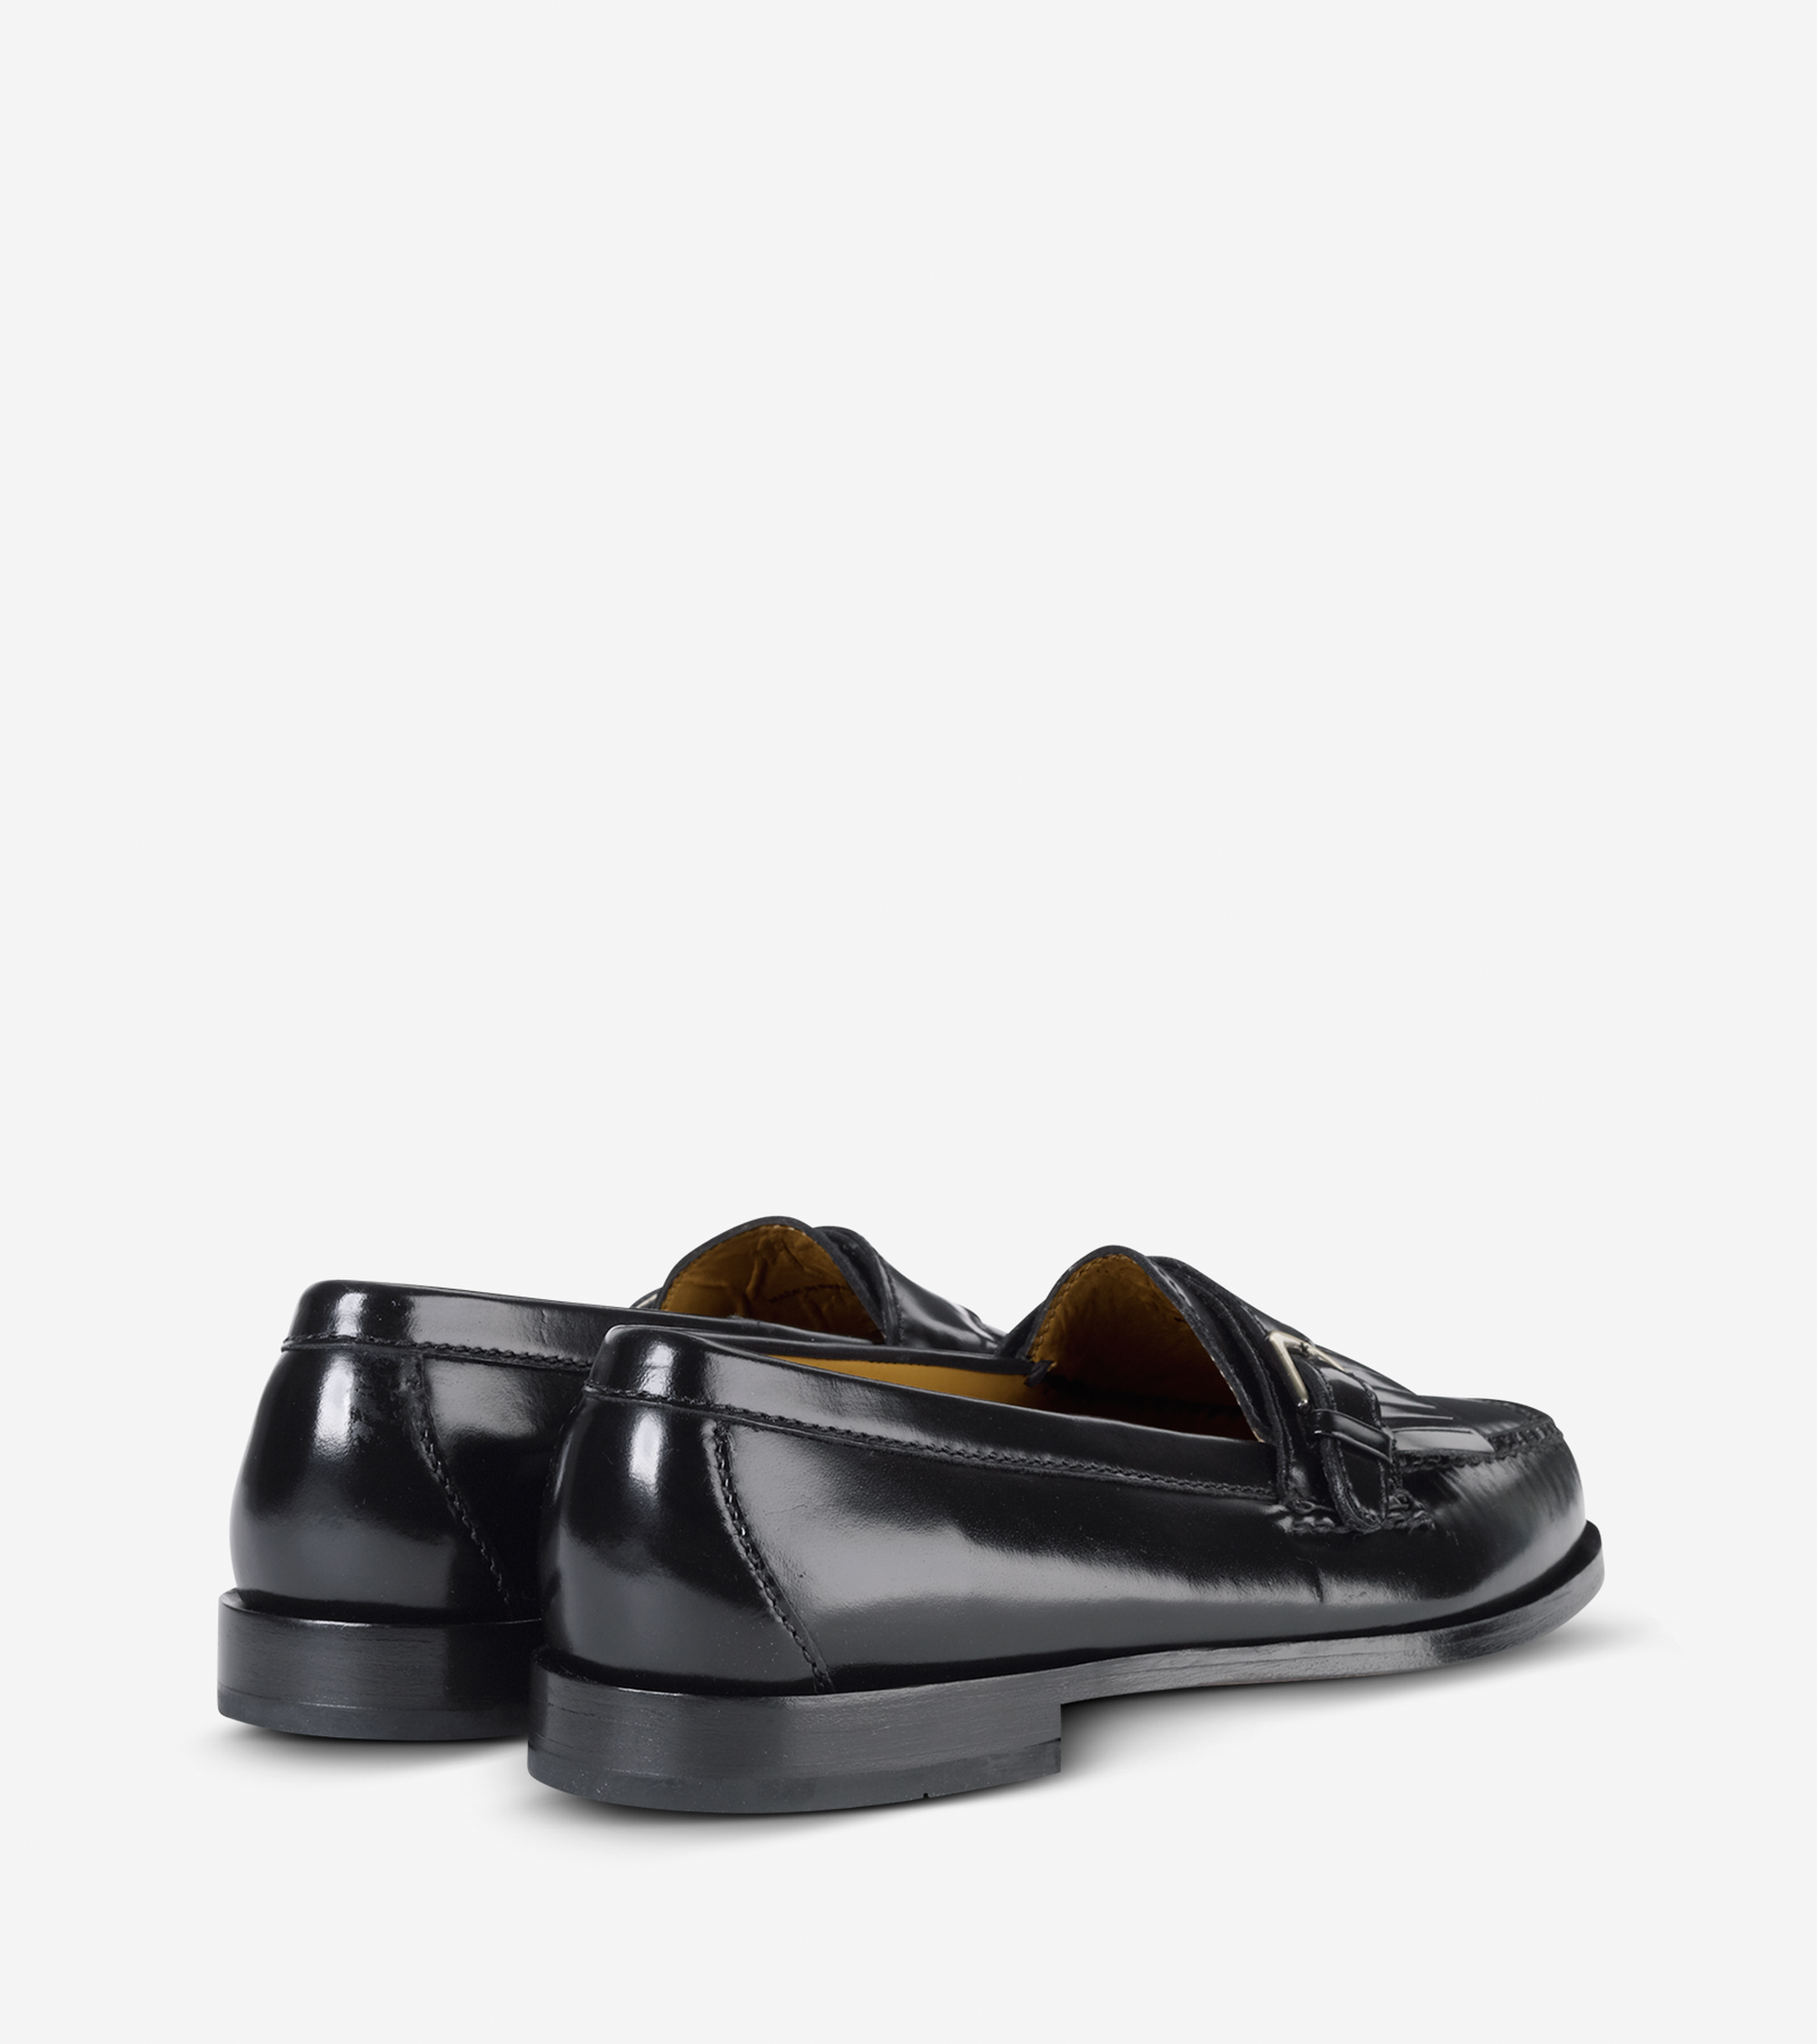 50e07263510 Pinch Buckle Loafer · Pinch Buckle Loafer ...